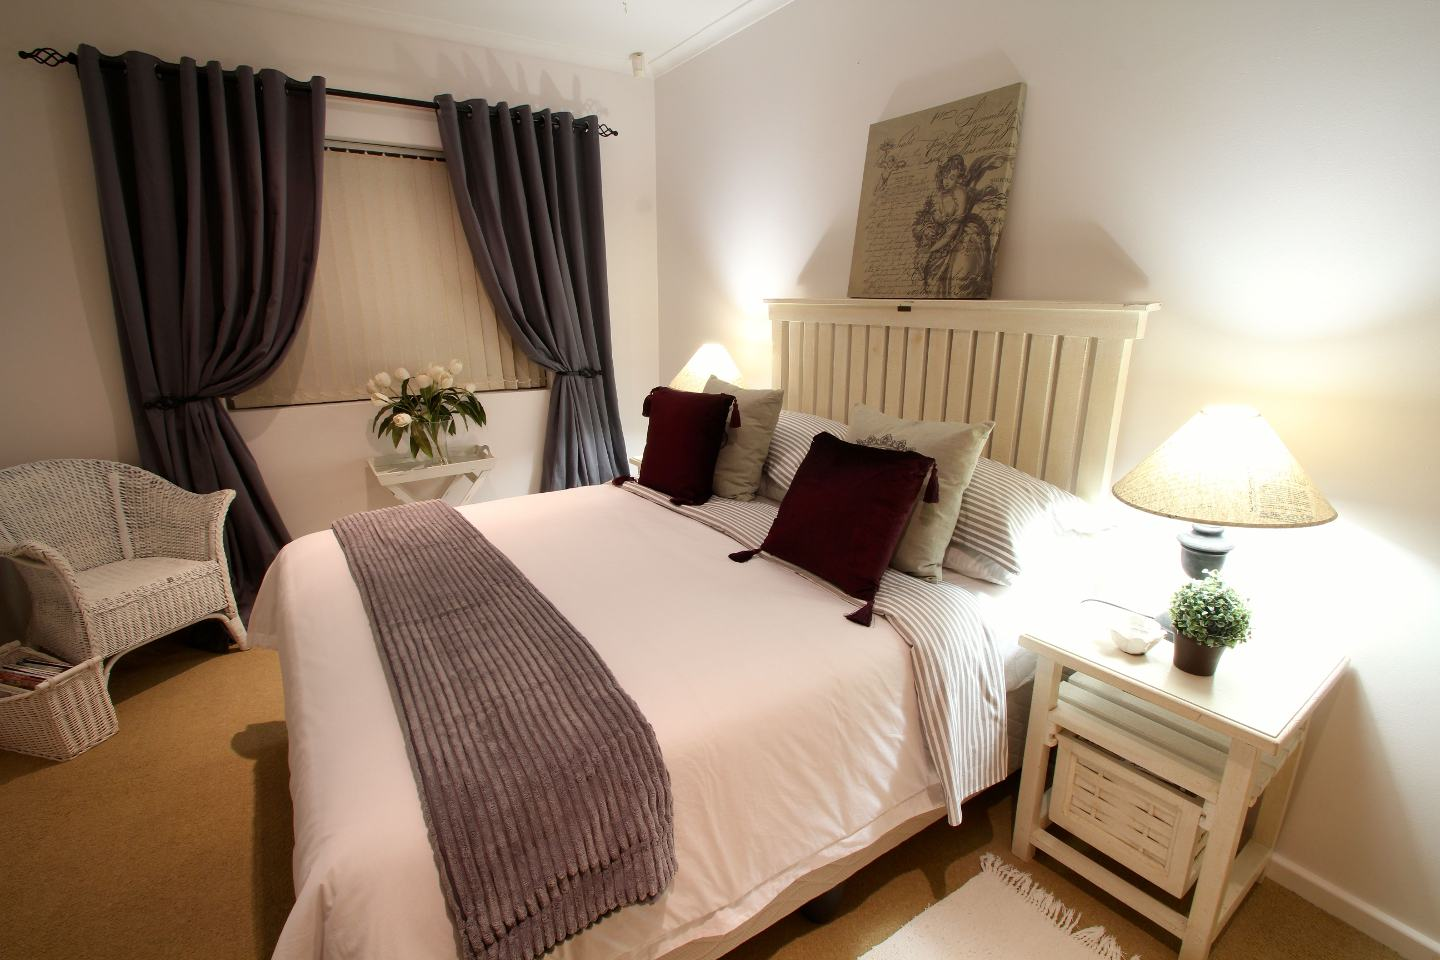 Aquadel accommodation port elizabeth south africa - Accomadation in port elizabeth ...